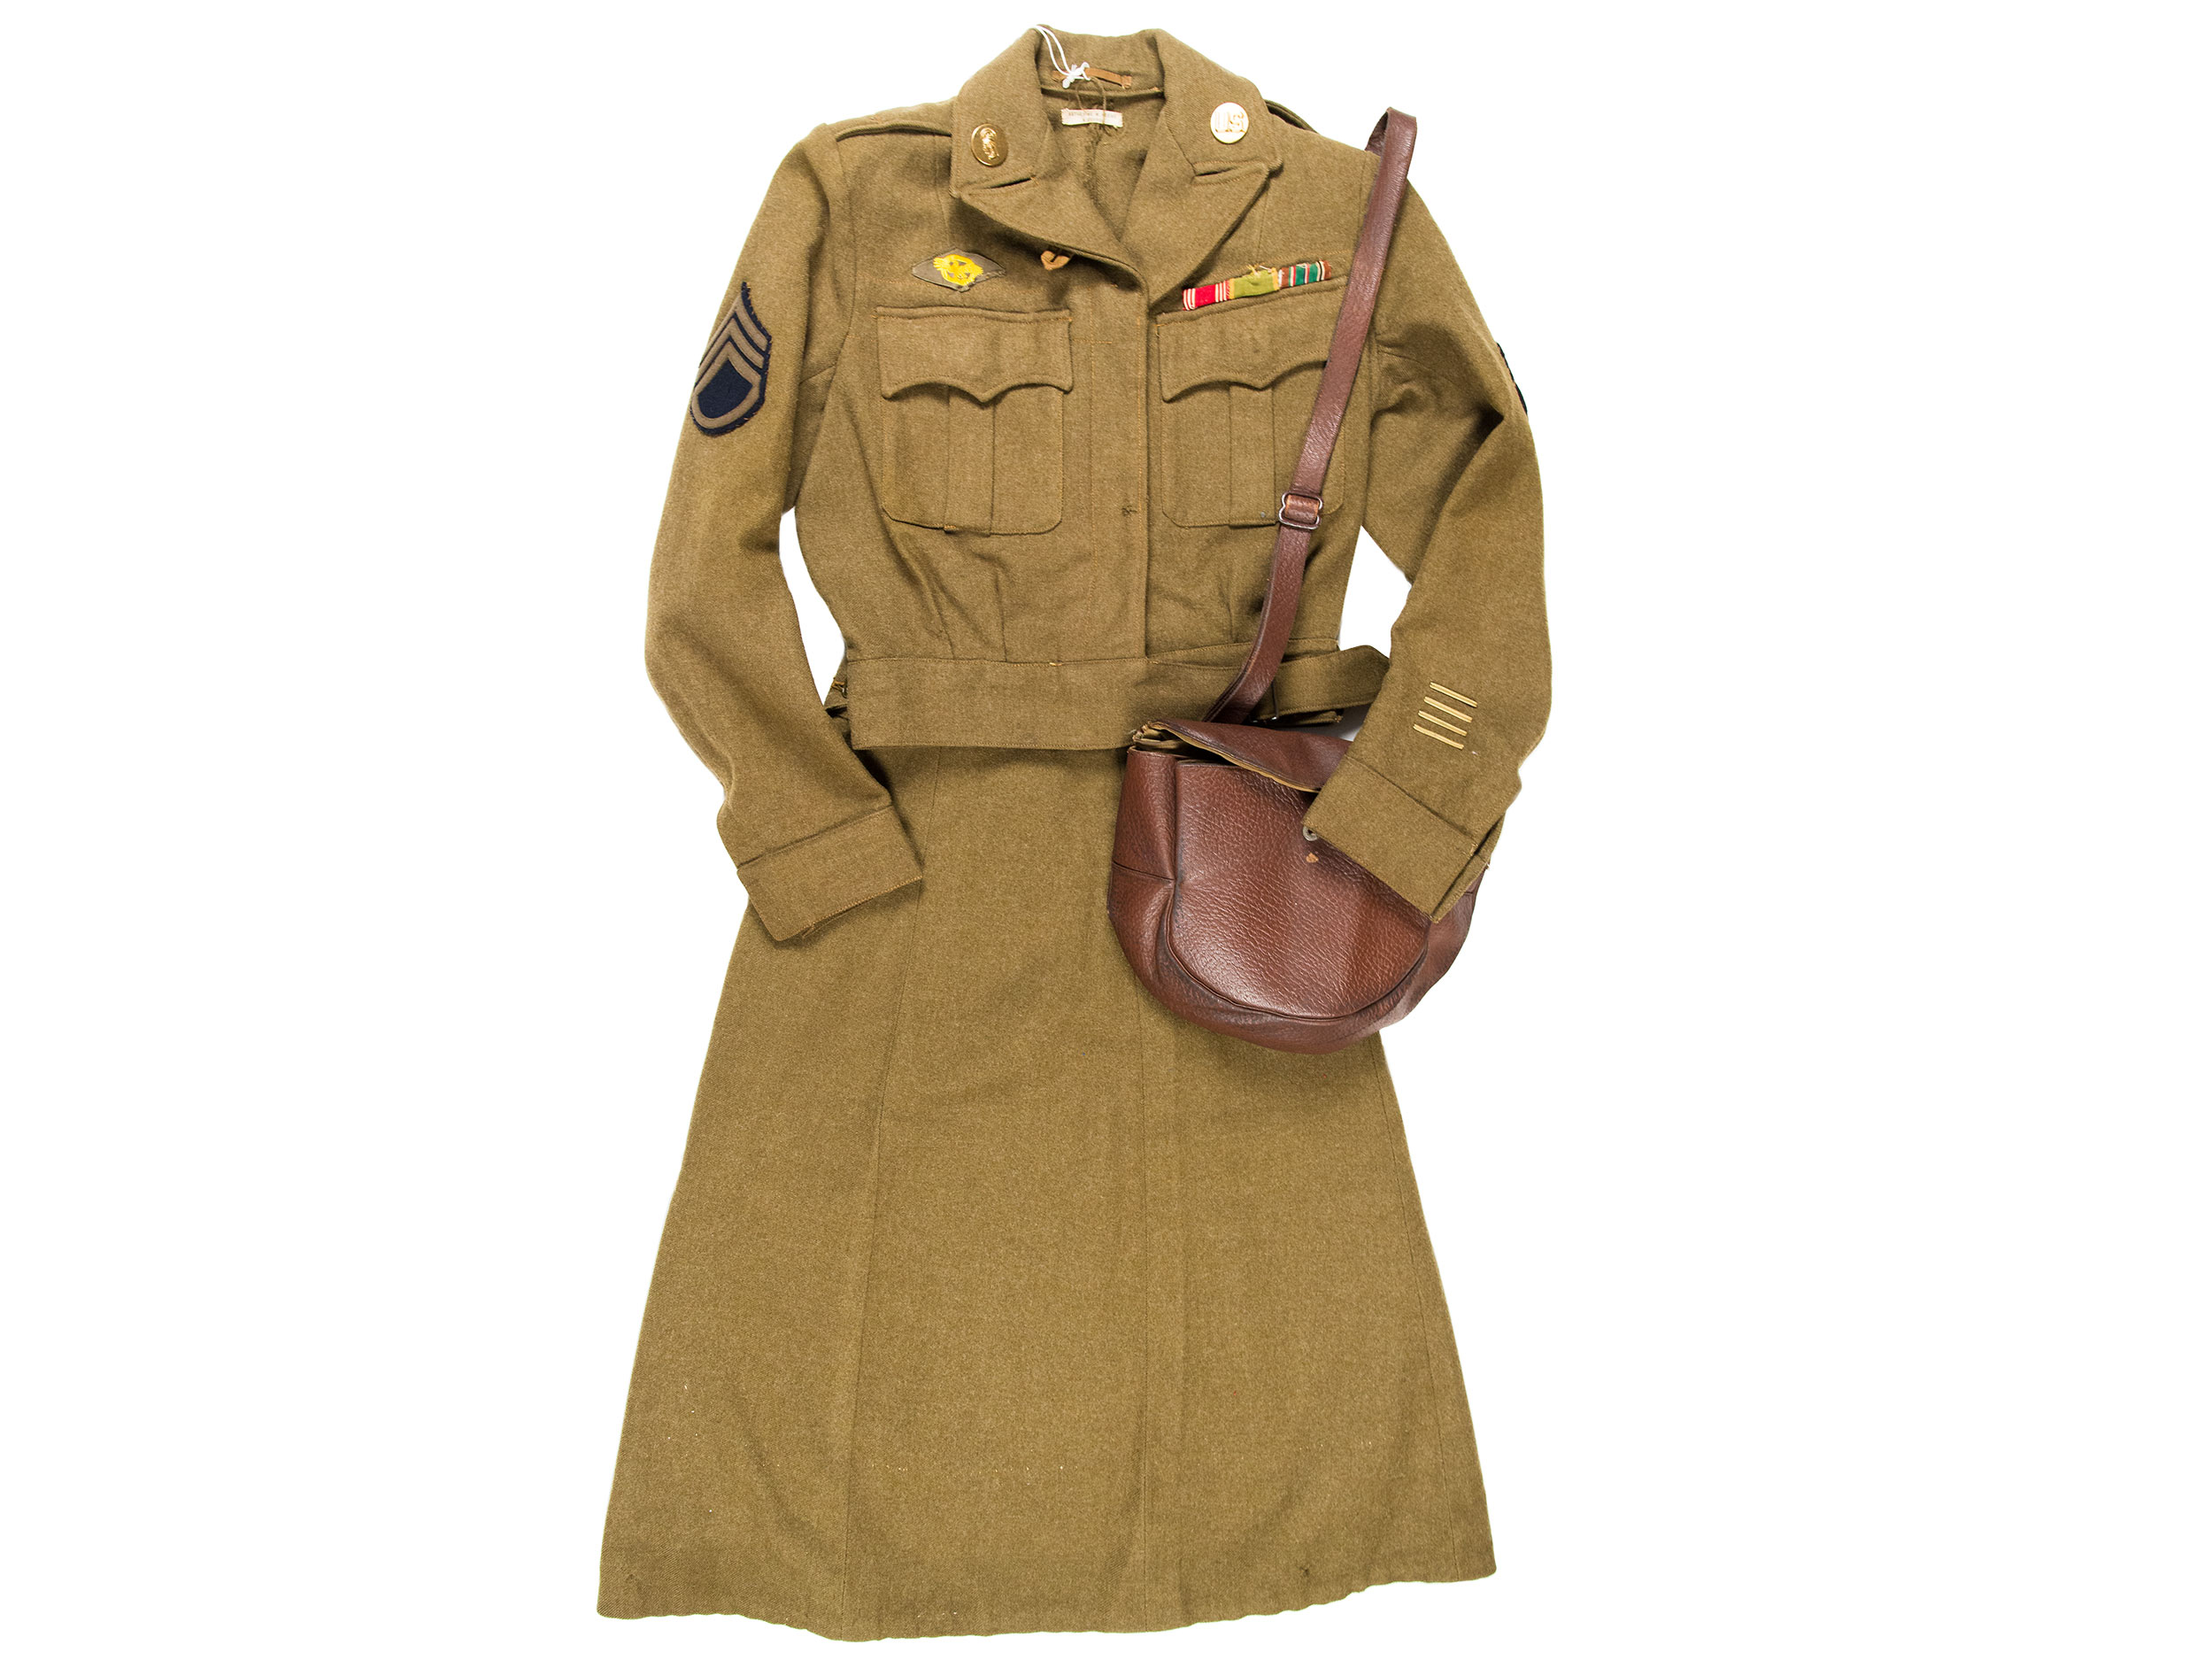 Women's Army Corps uniform, 1943–1945